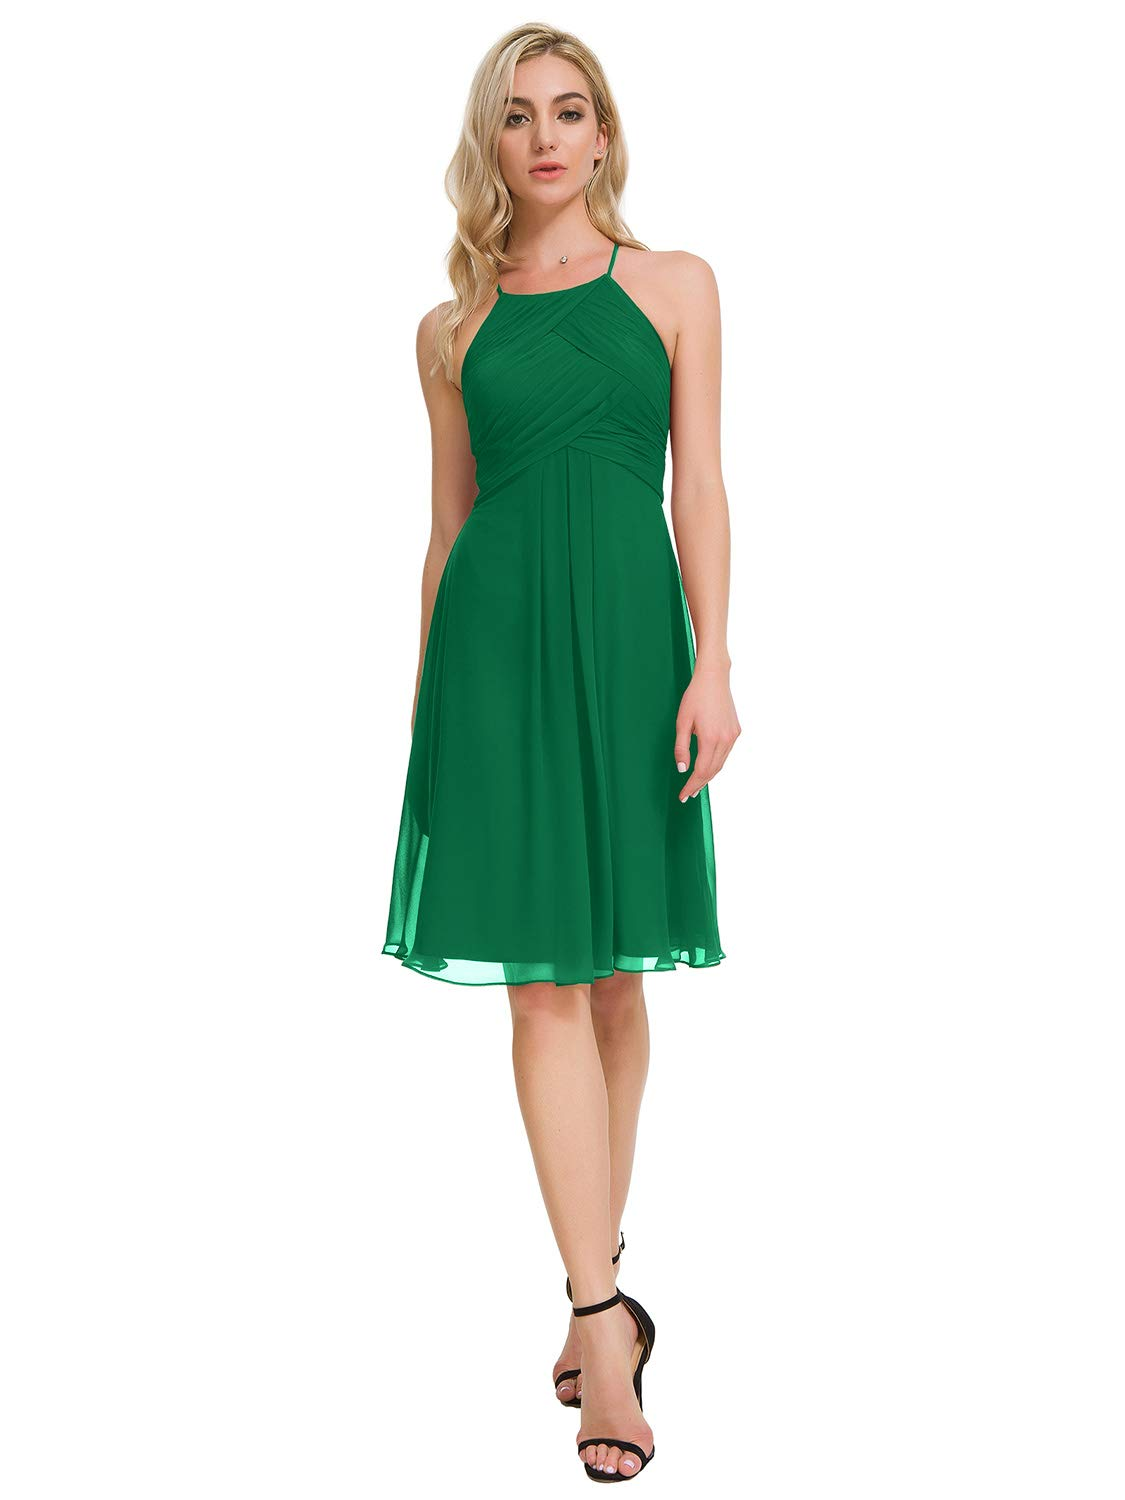 Alicepub Halter Chiffon Bridesmaid Dresses Short Homecoming Formal Party Dress for Special Occasion